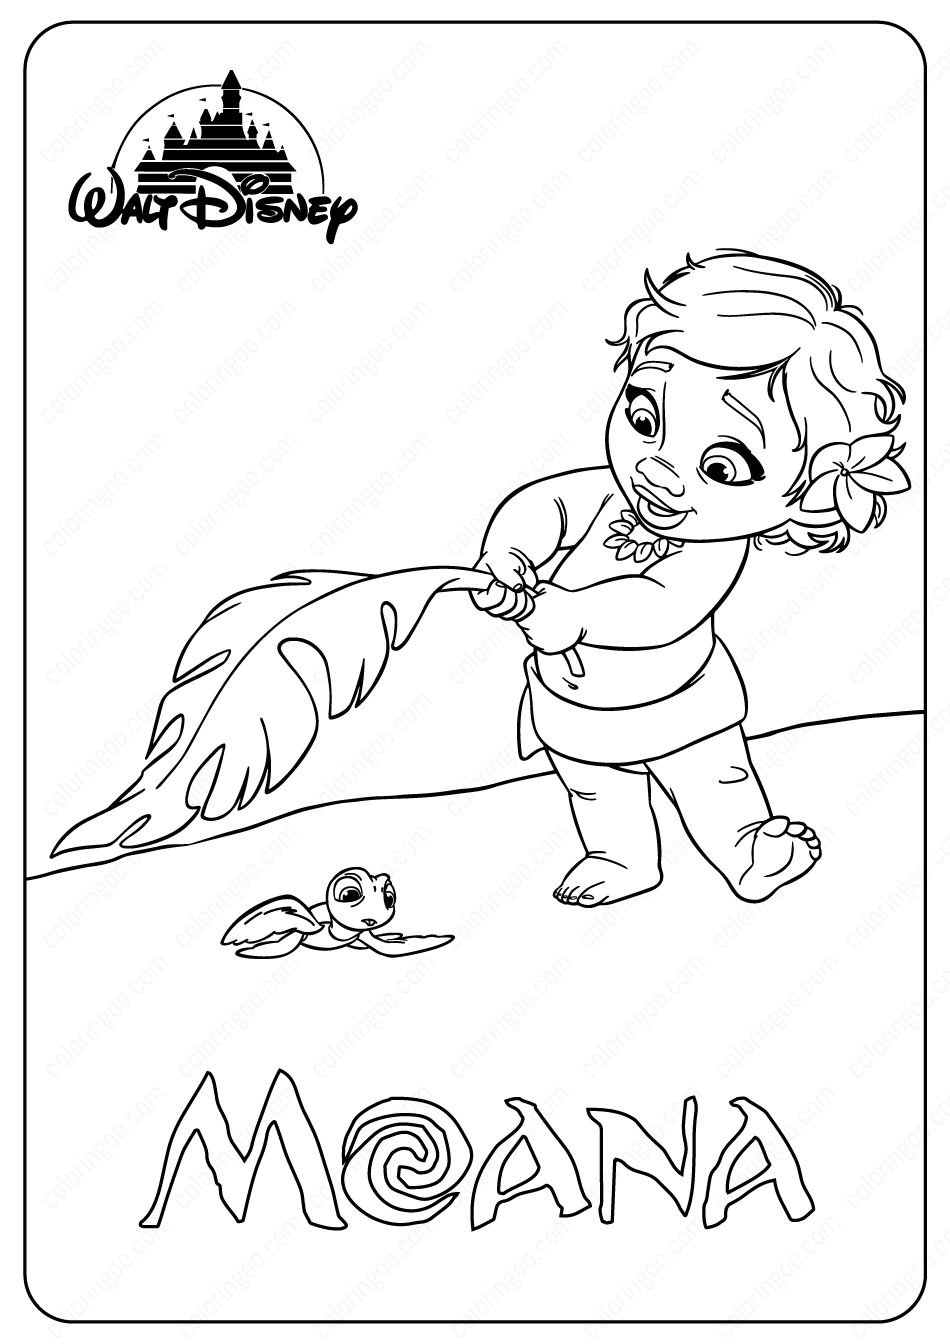 Baby Moana Coloring Pages In 2020 Moana Coloring Pages Disney Coloring Pages Printables Moana Coloring